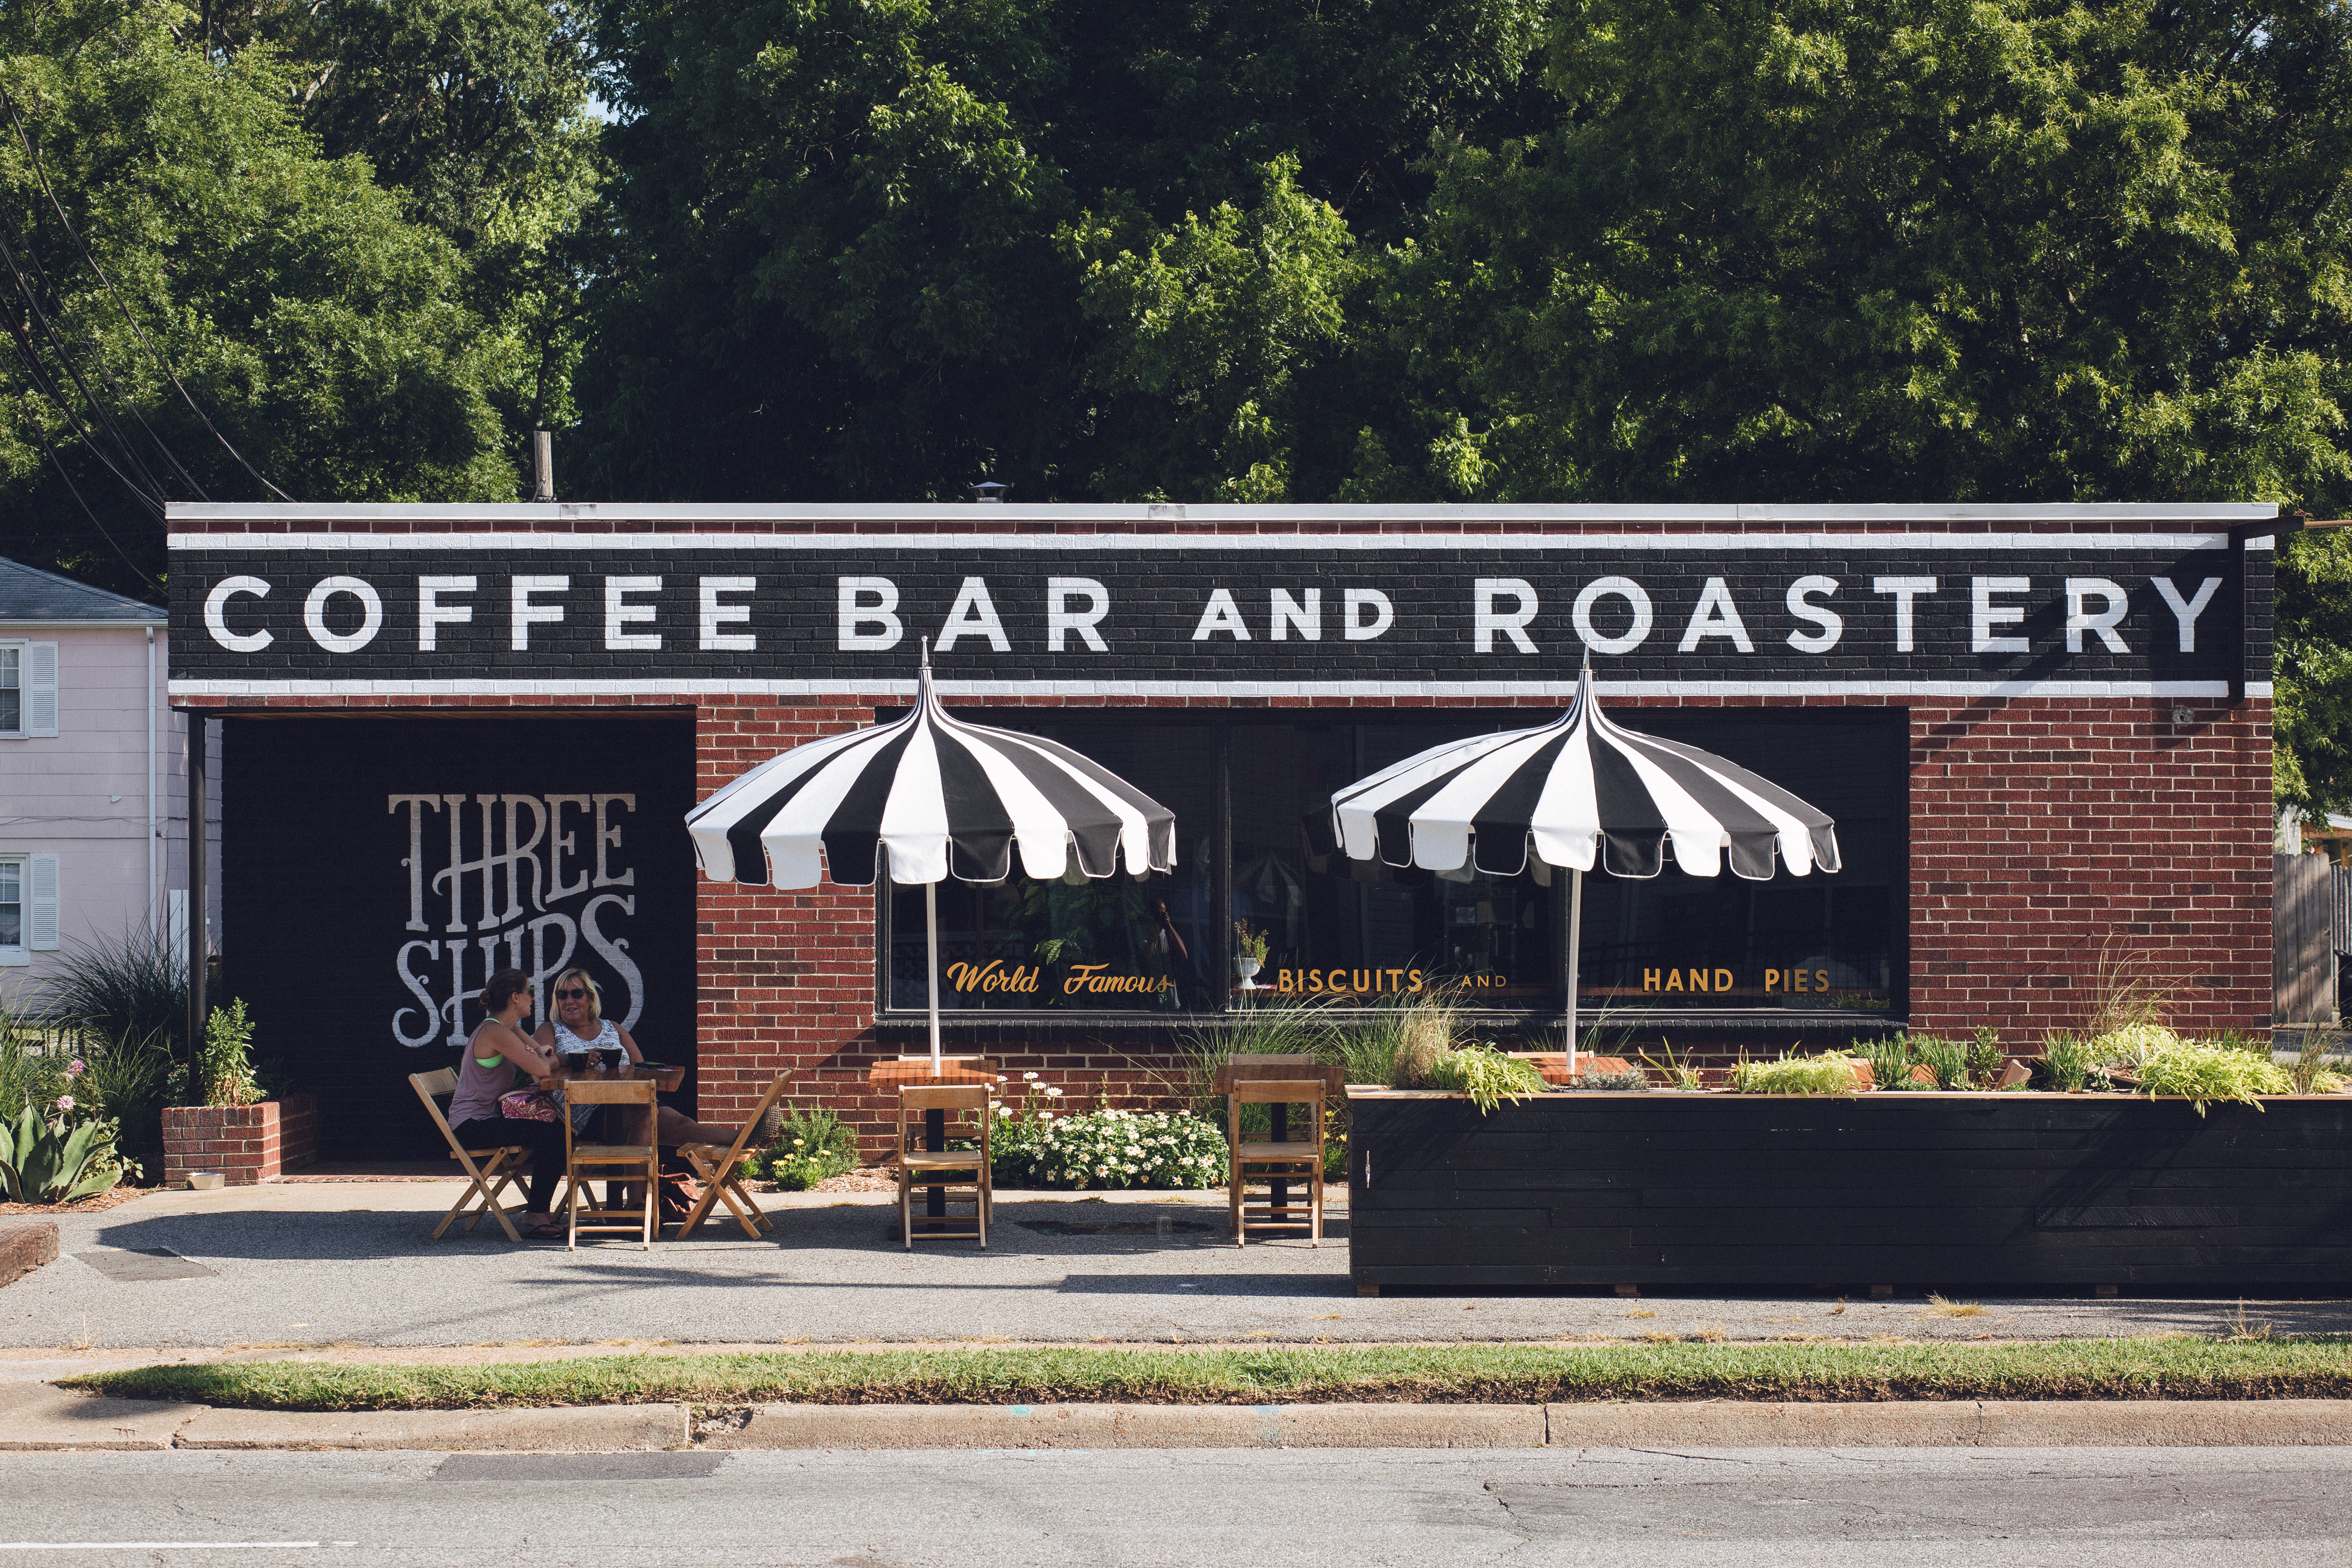 three ships coffee roasters virginia beach build-outs of summer cafe sprudge